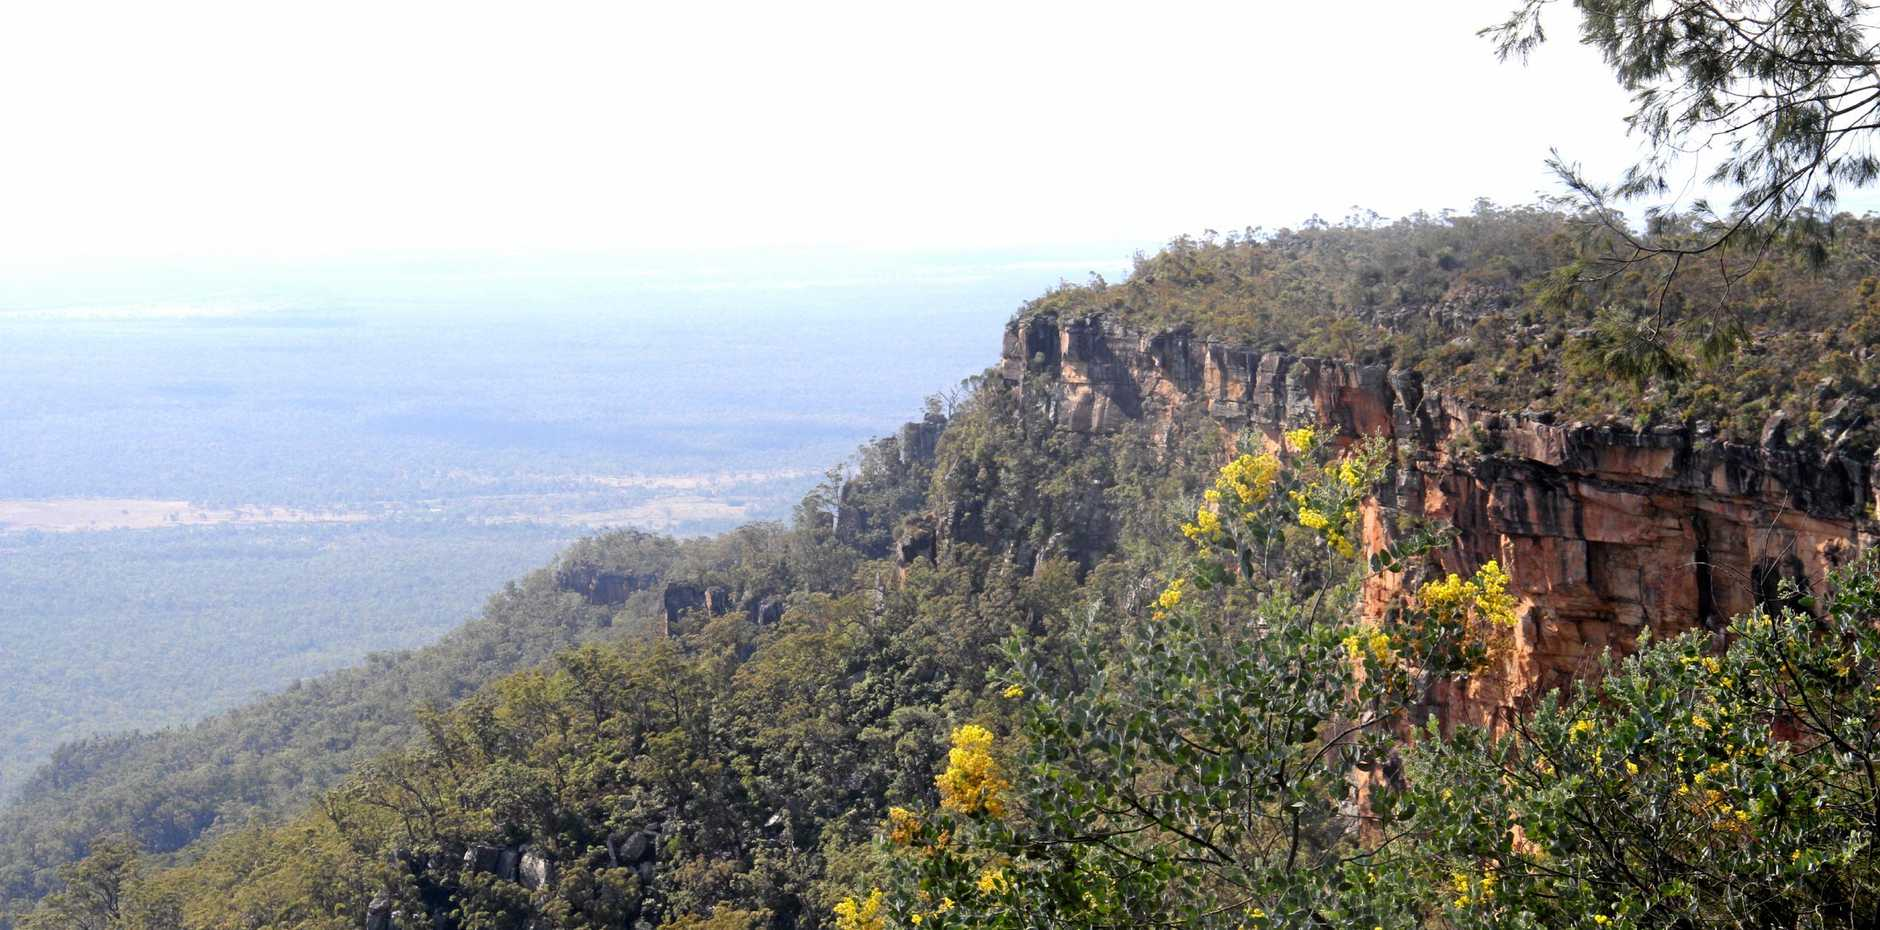 BLACKDOWN TABLELANDS: It's easy to lose your sense of reality with a view like this.